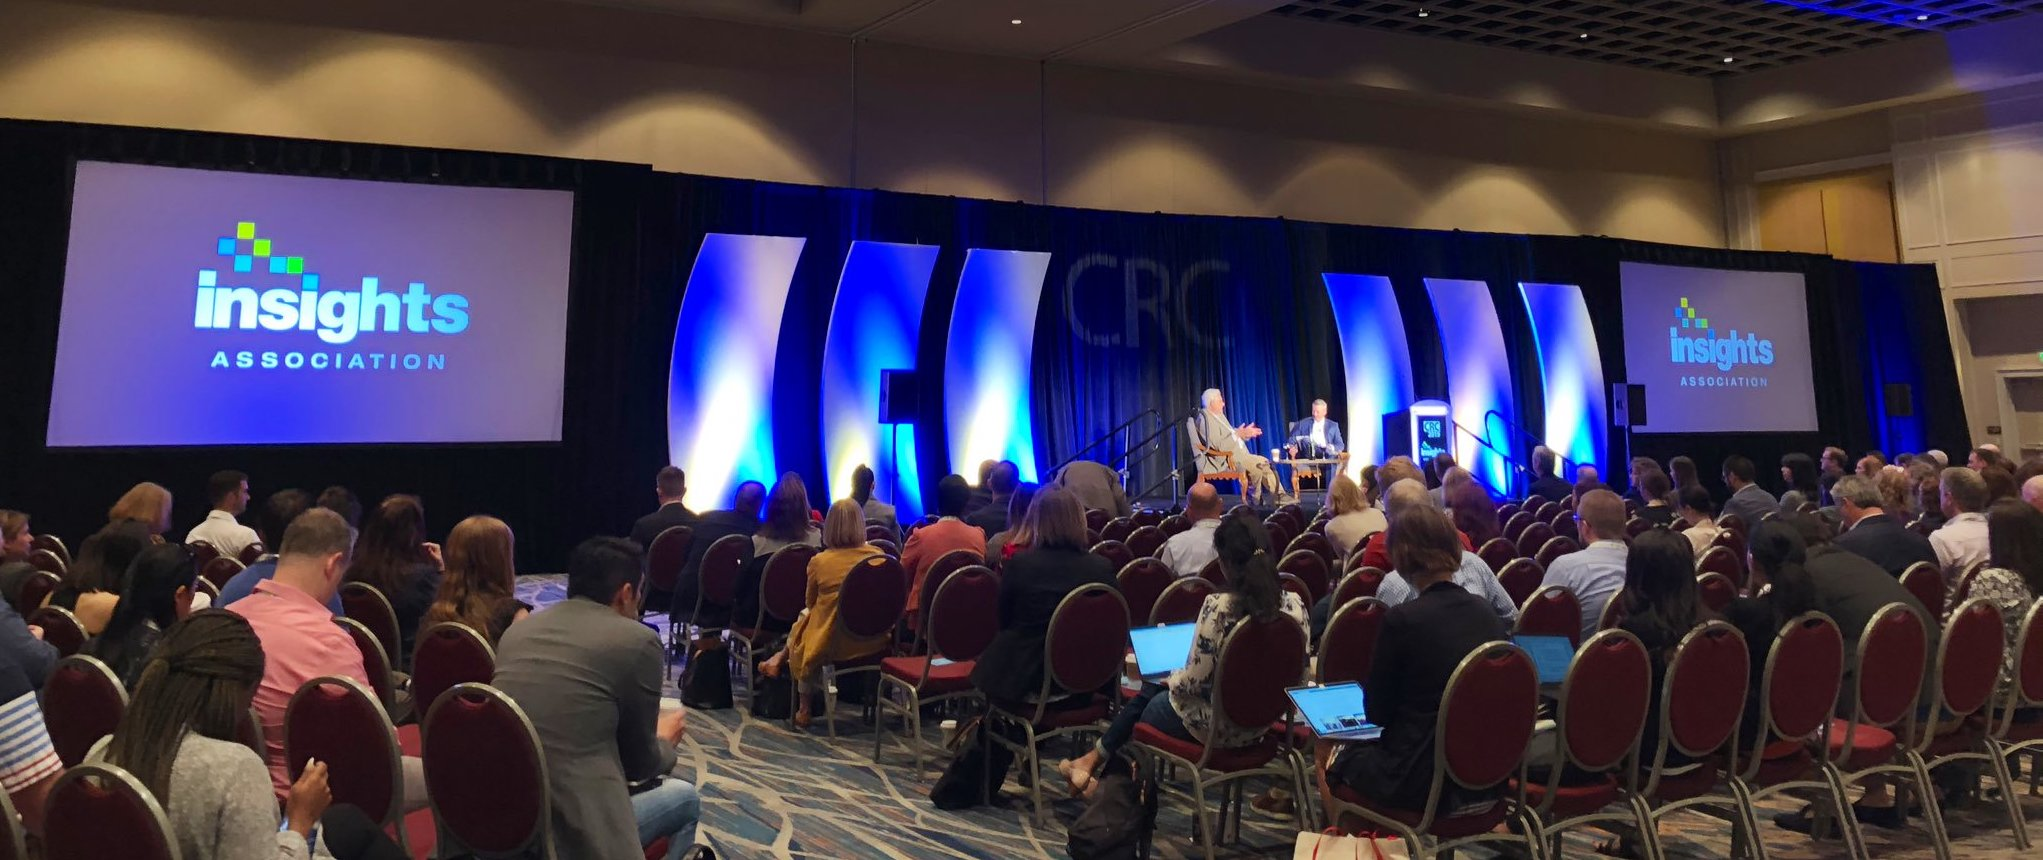 Industry Trends and other Takeaways from CRC